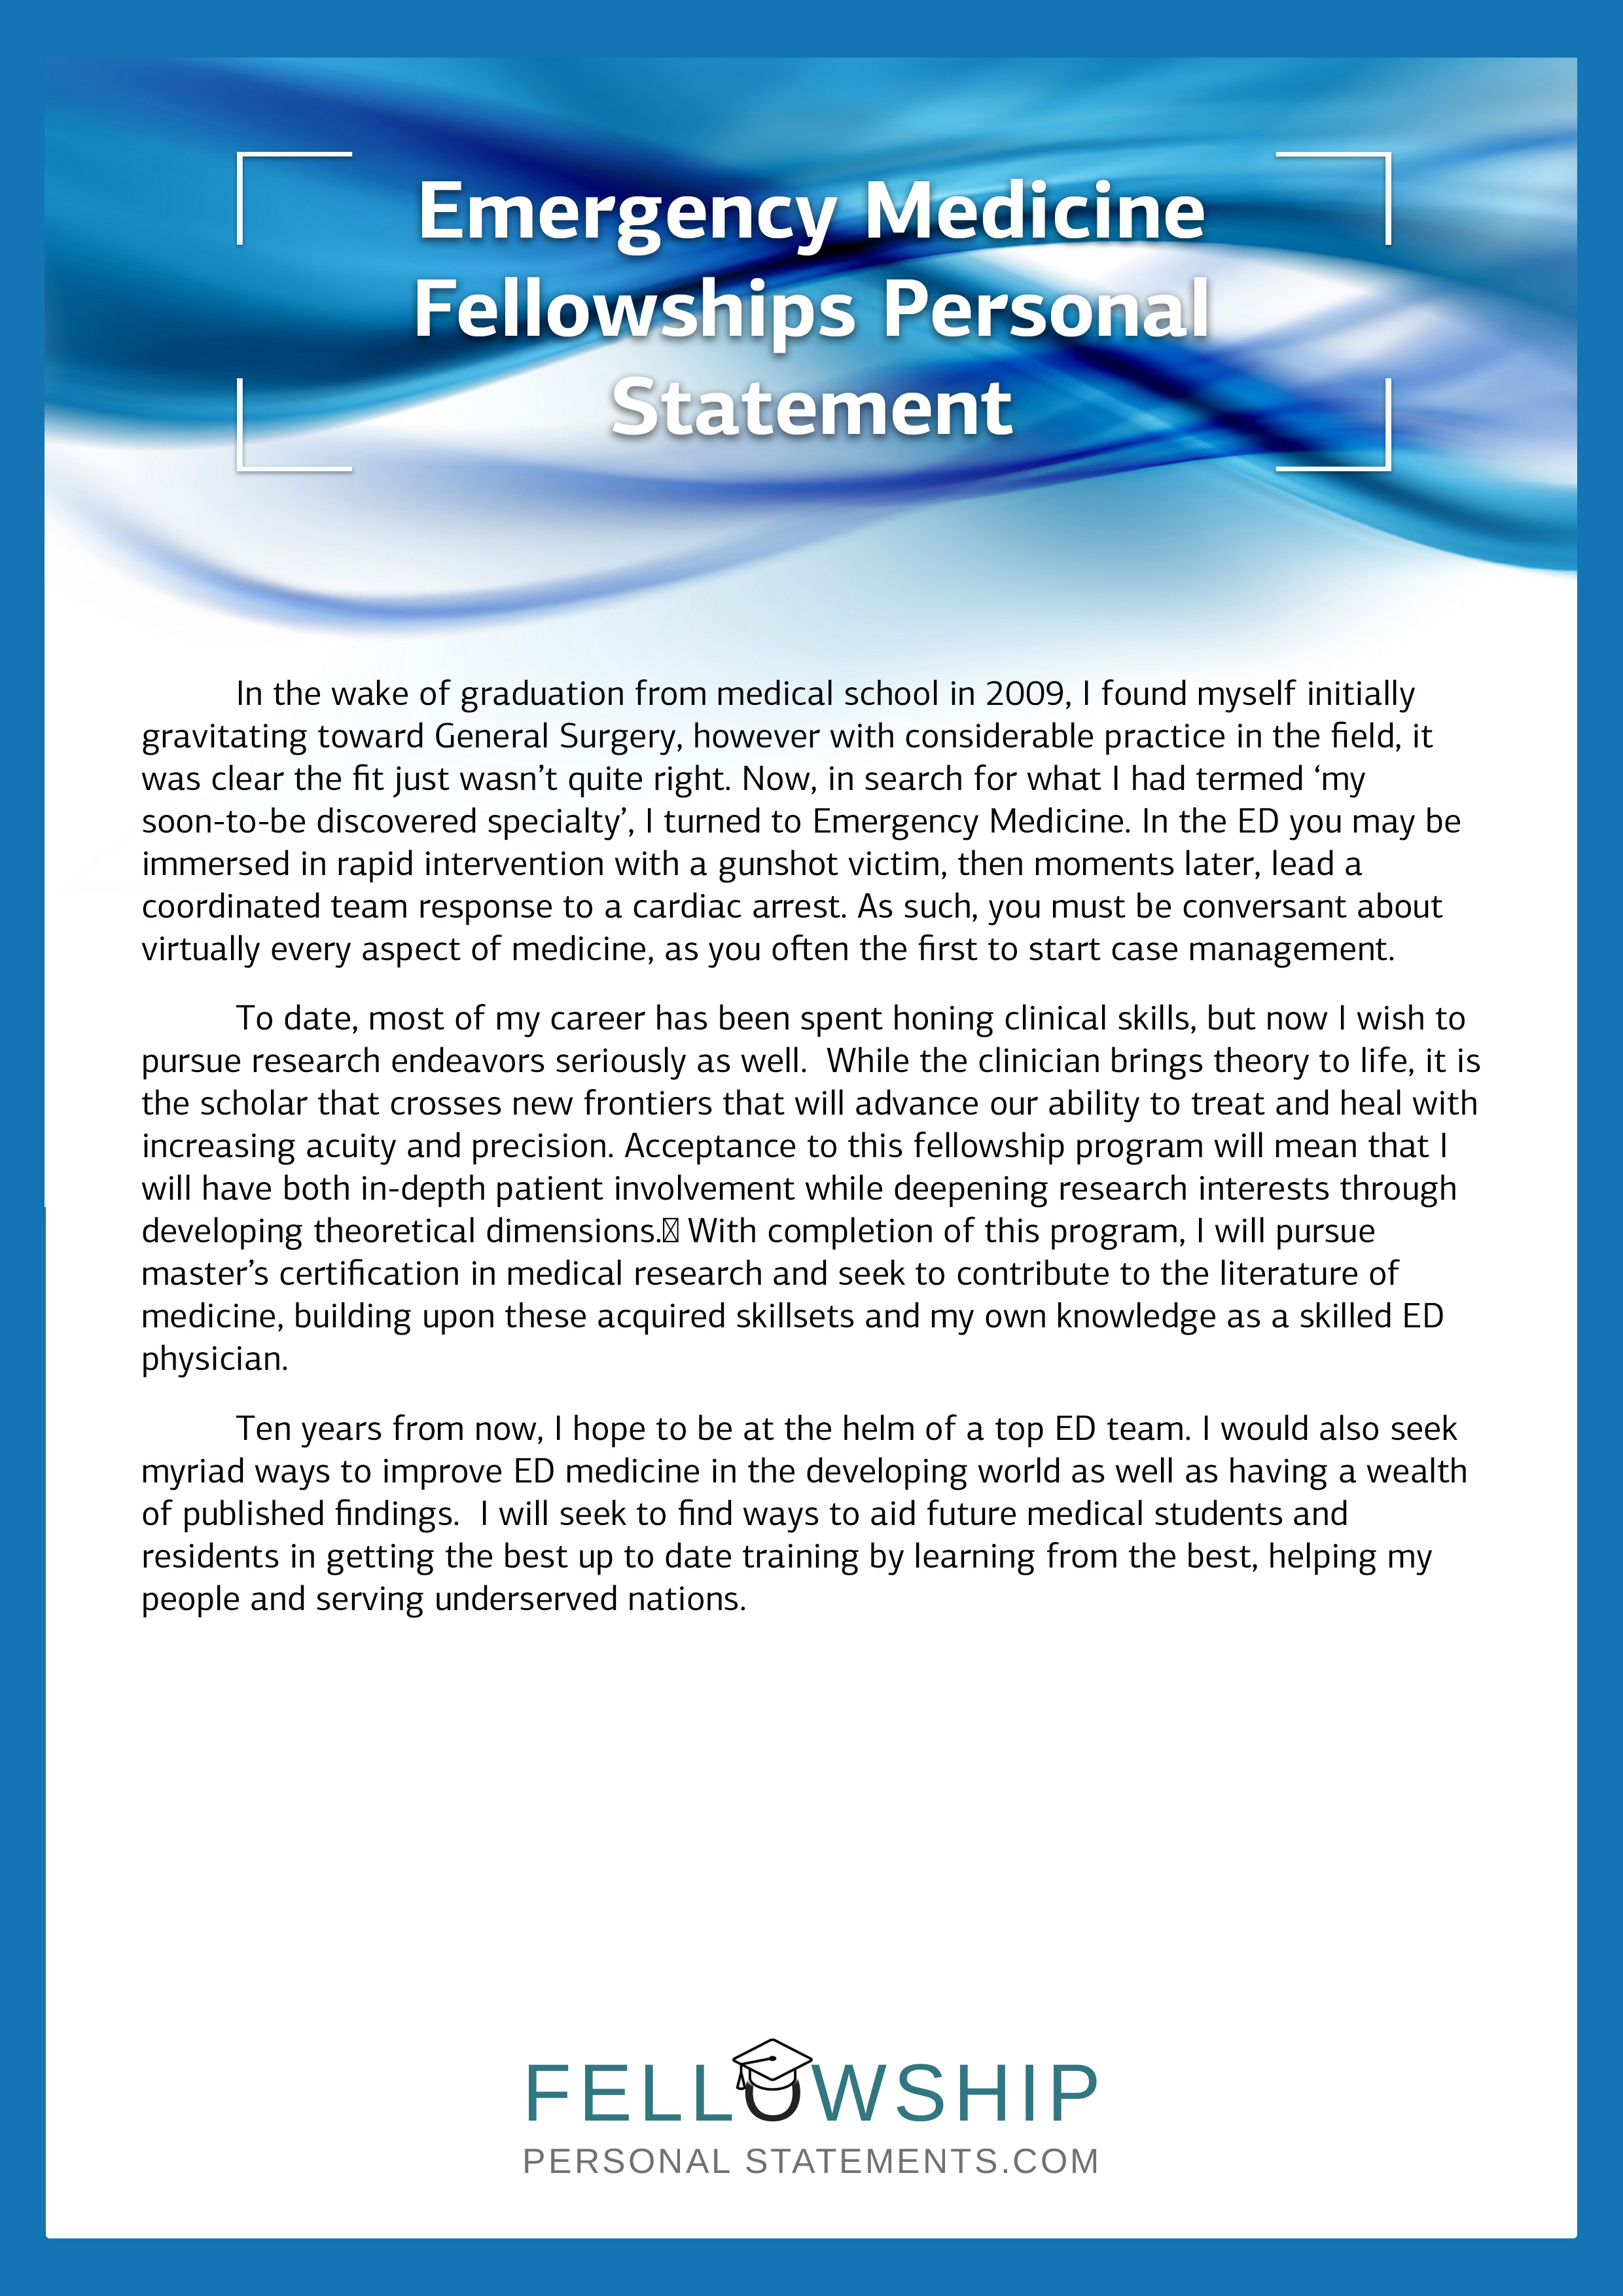 Medical fellowship personal statement